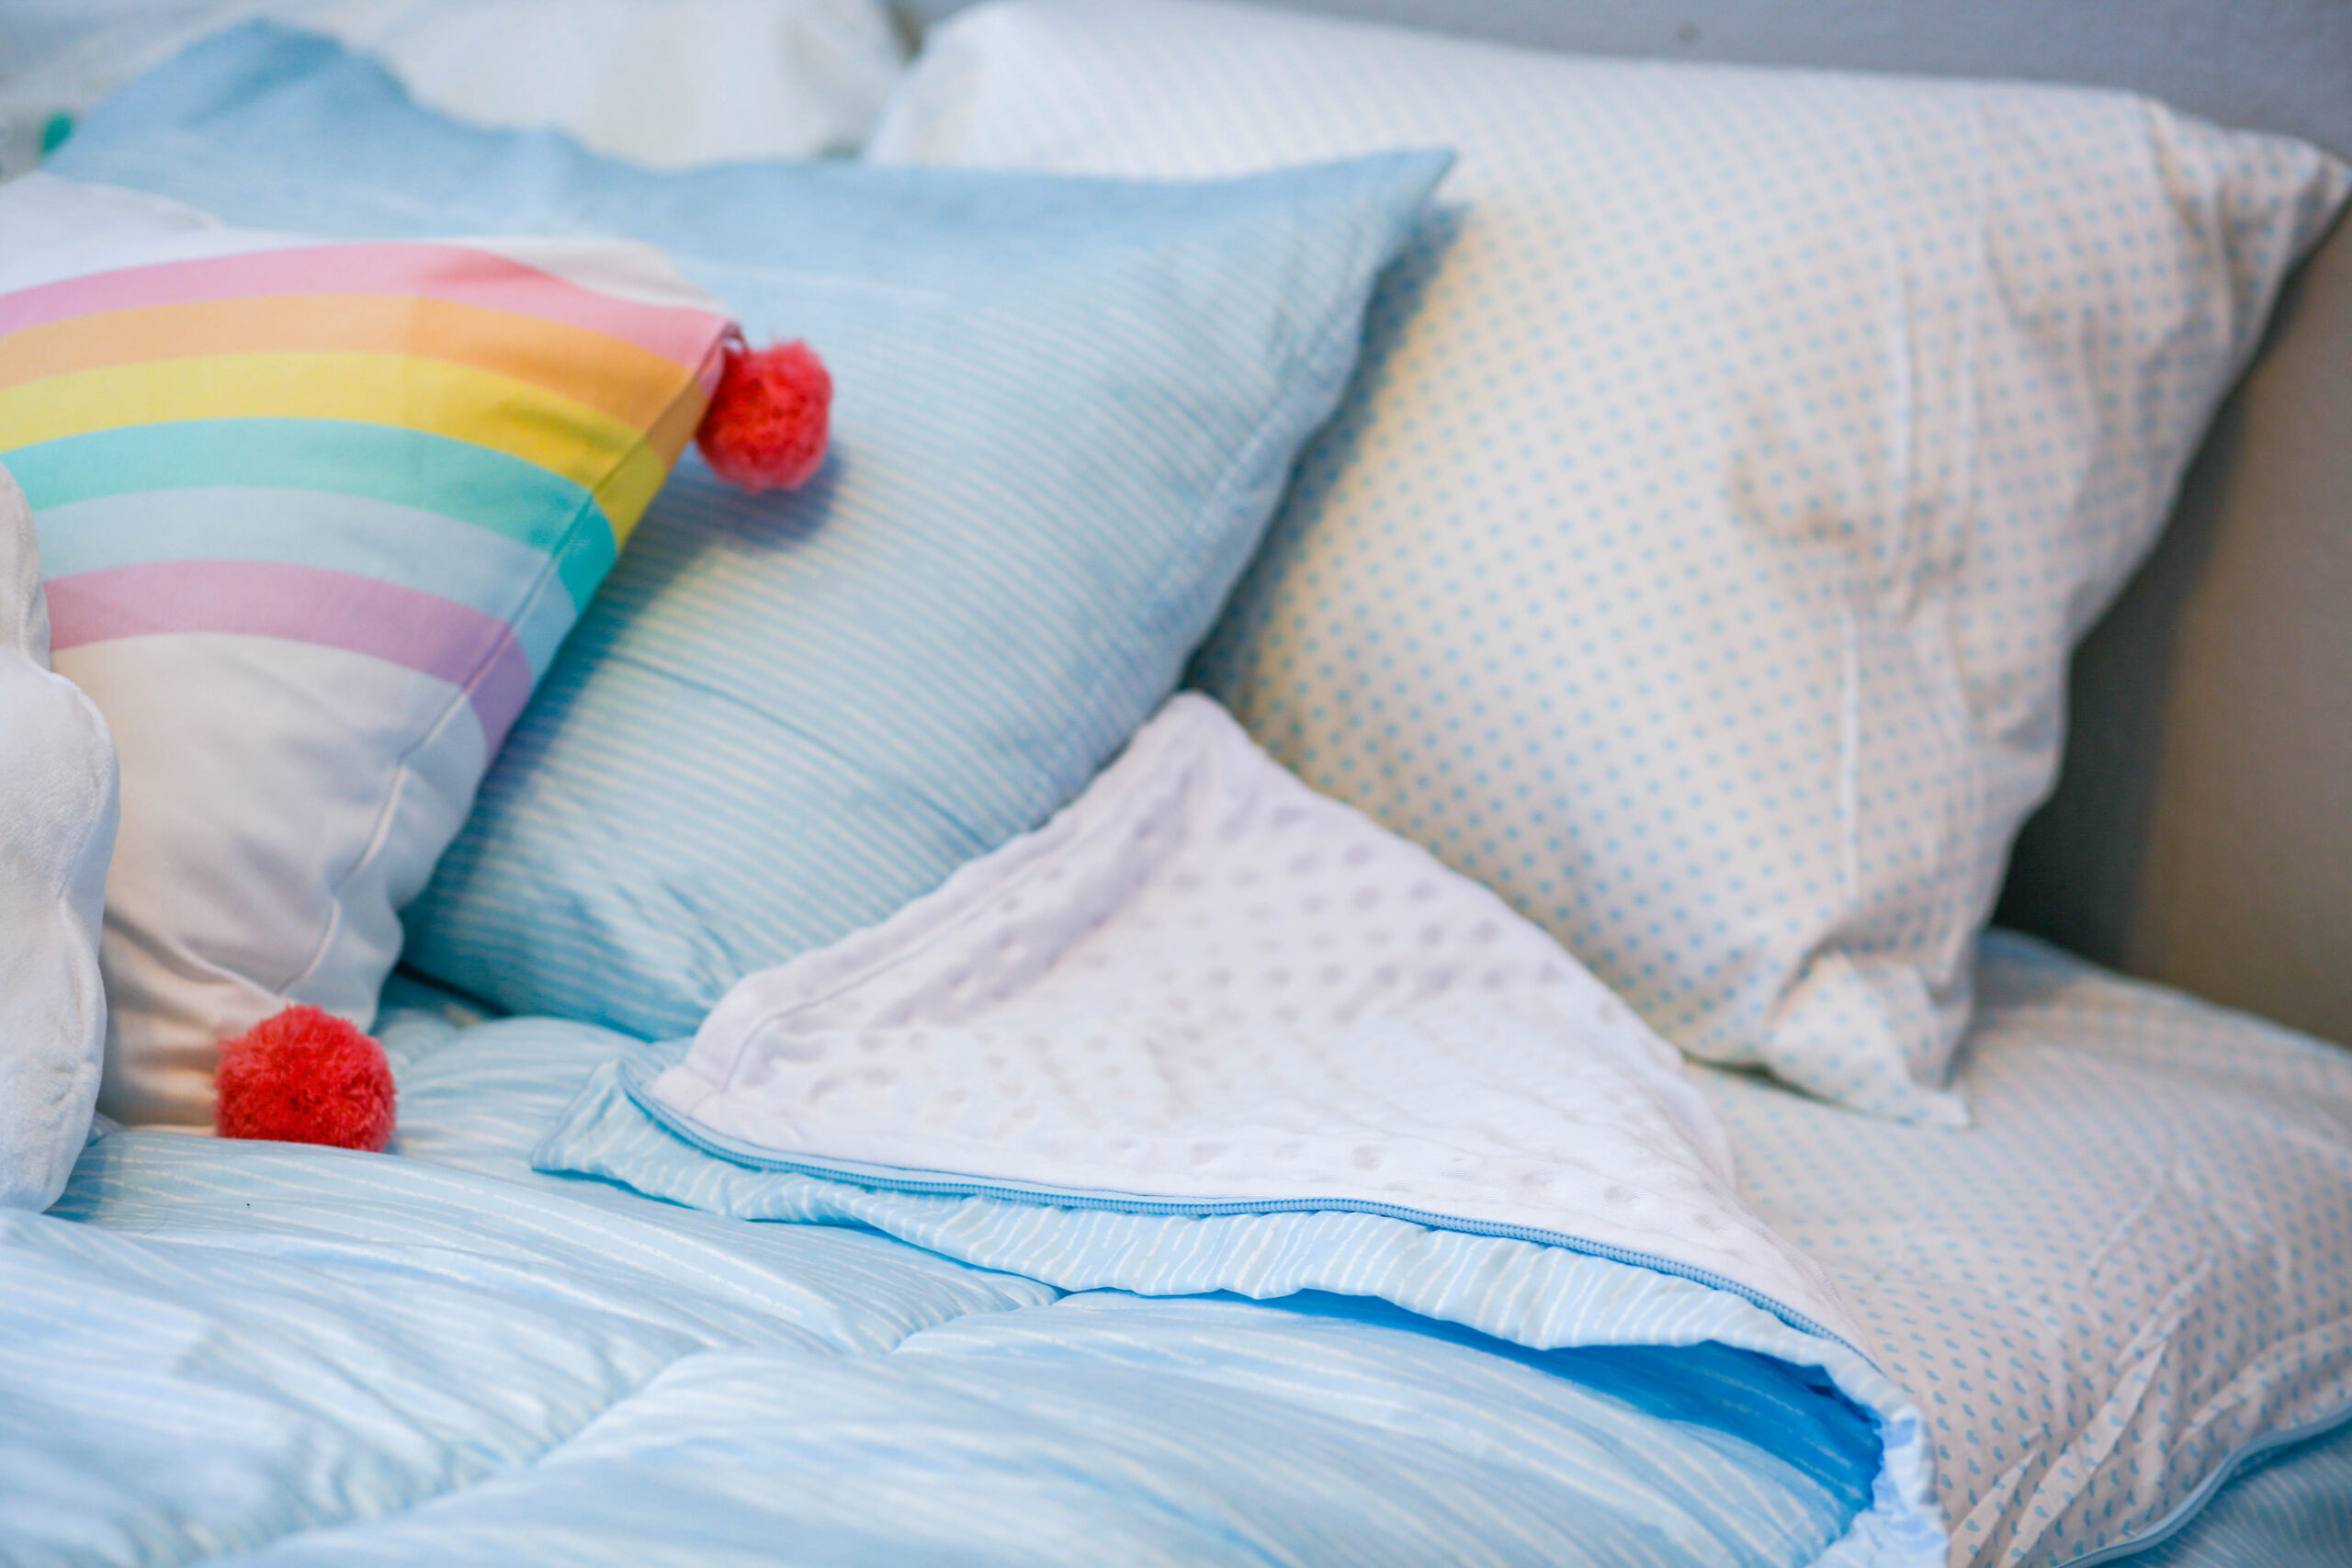 Zippable Sheets: Are Beddy's worth the price tag?